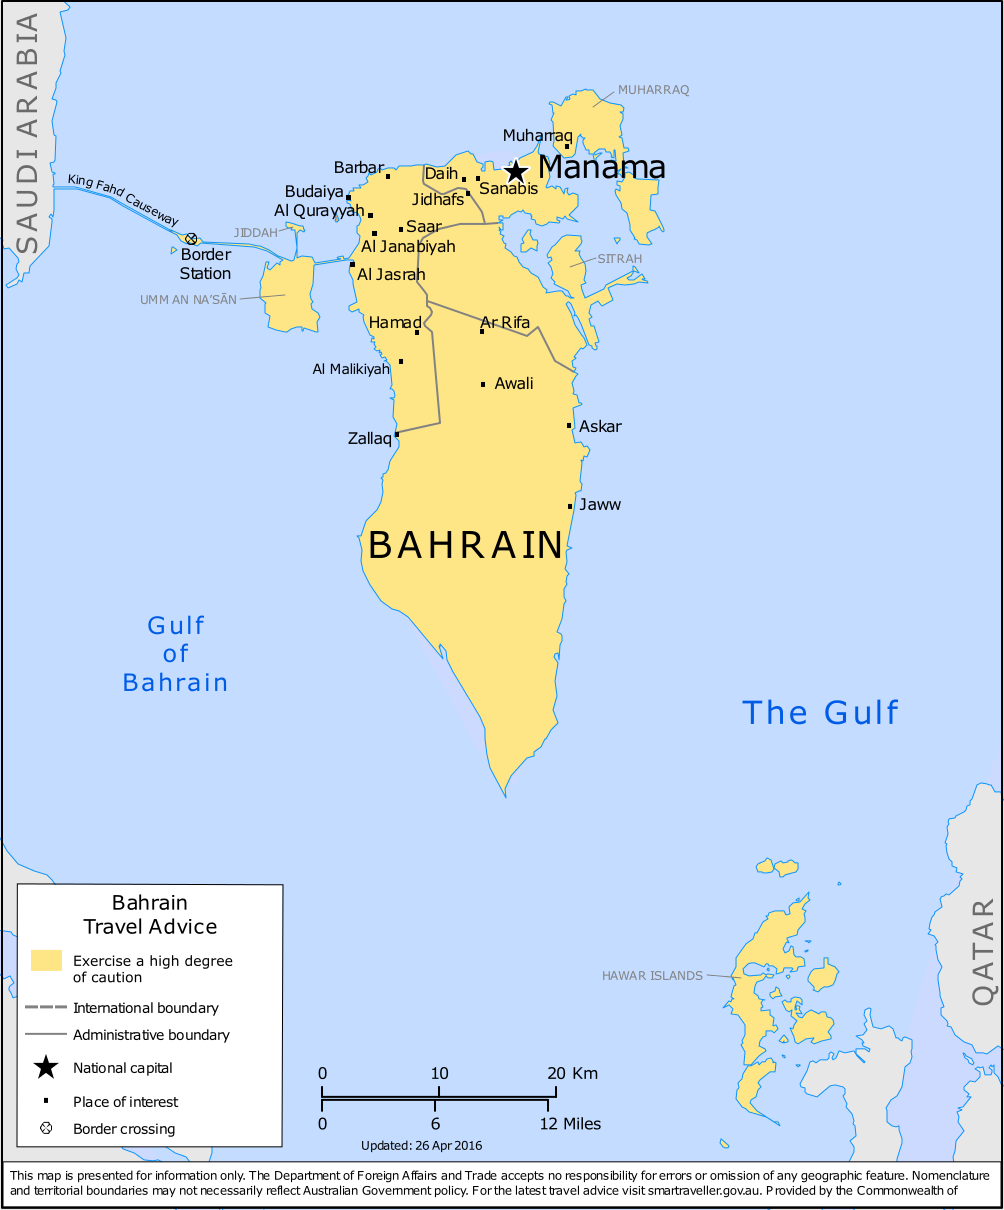 Bahrain-Travel-Insurance | AardvarkCompare.com